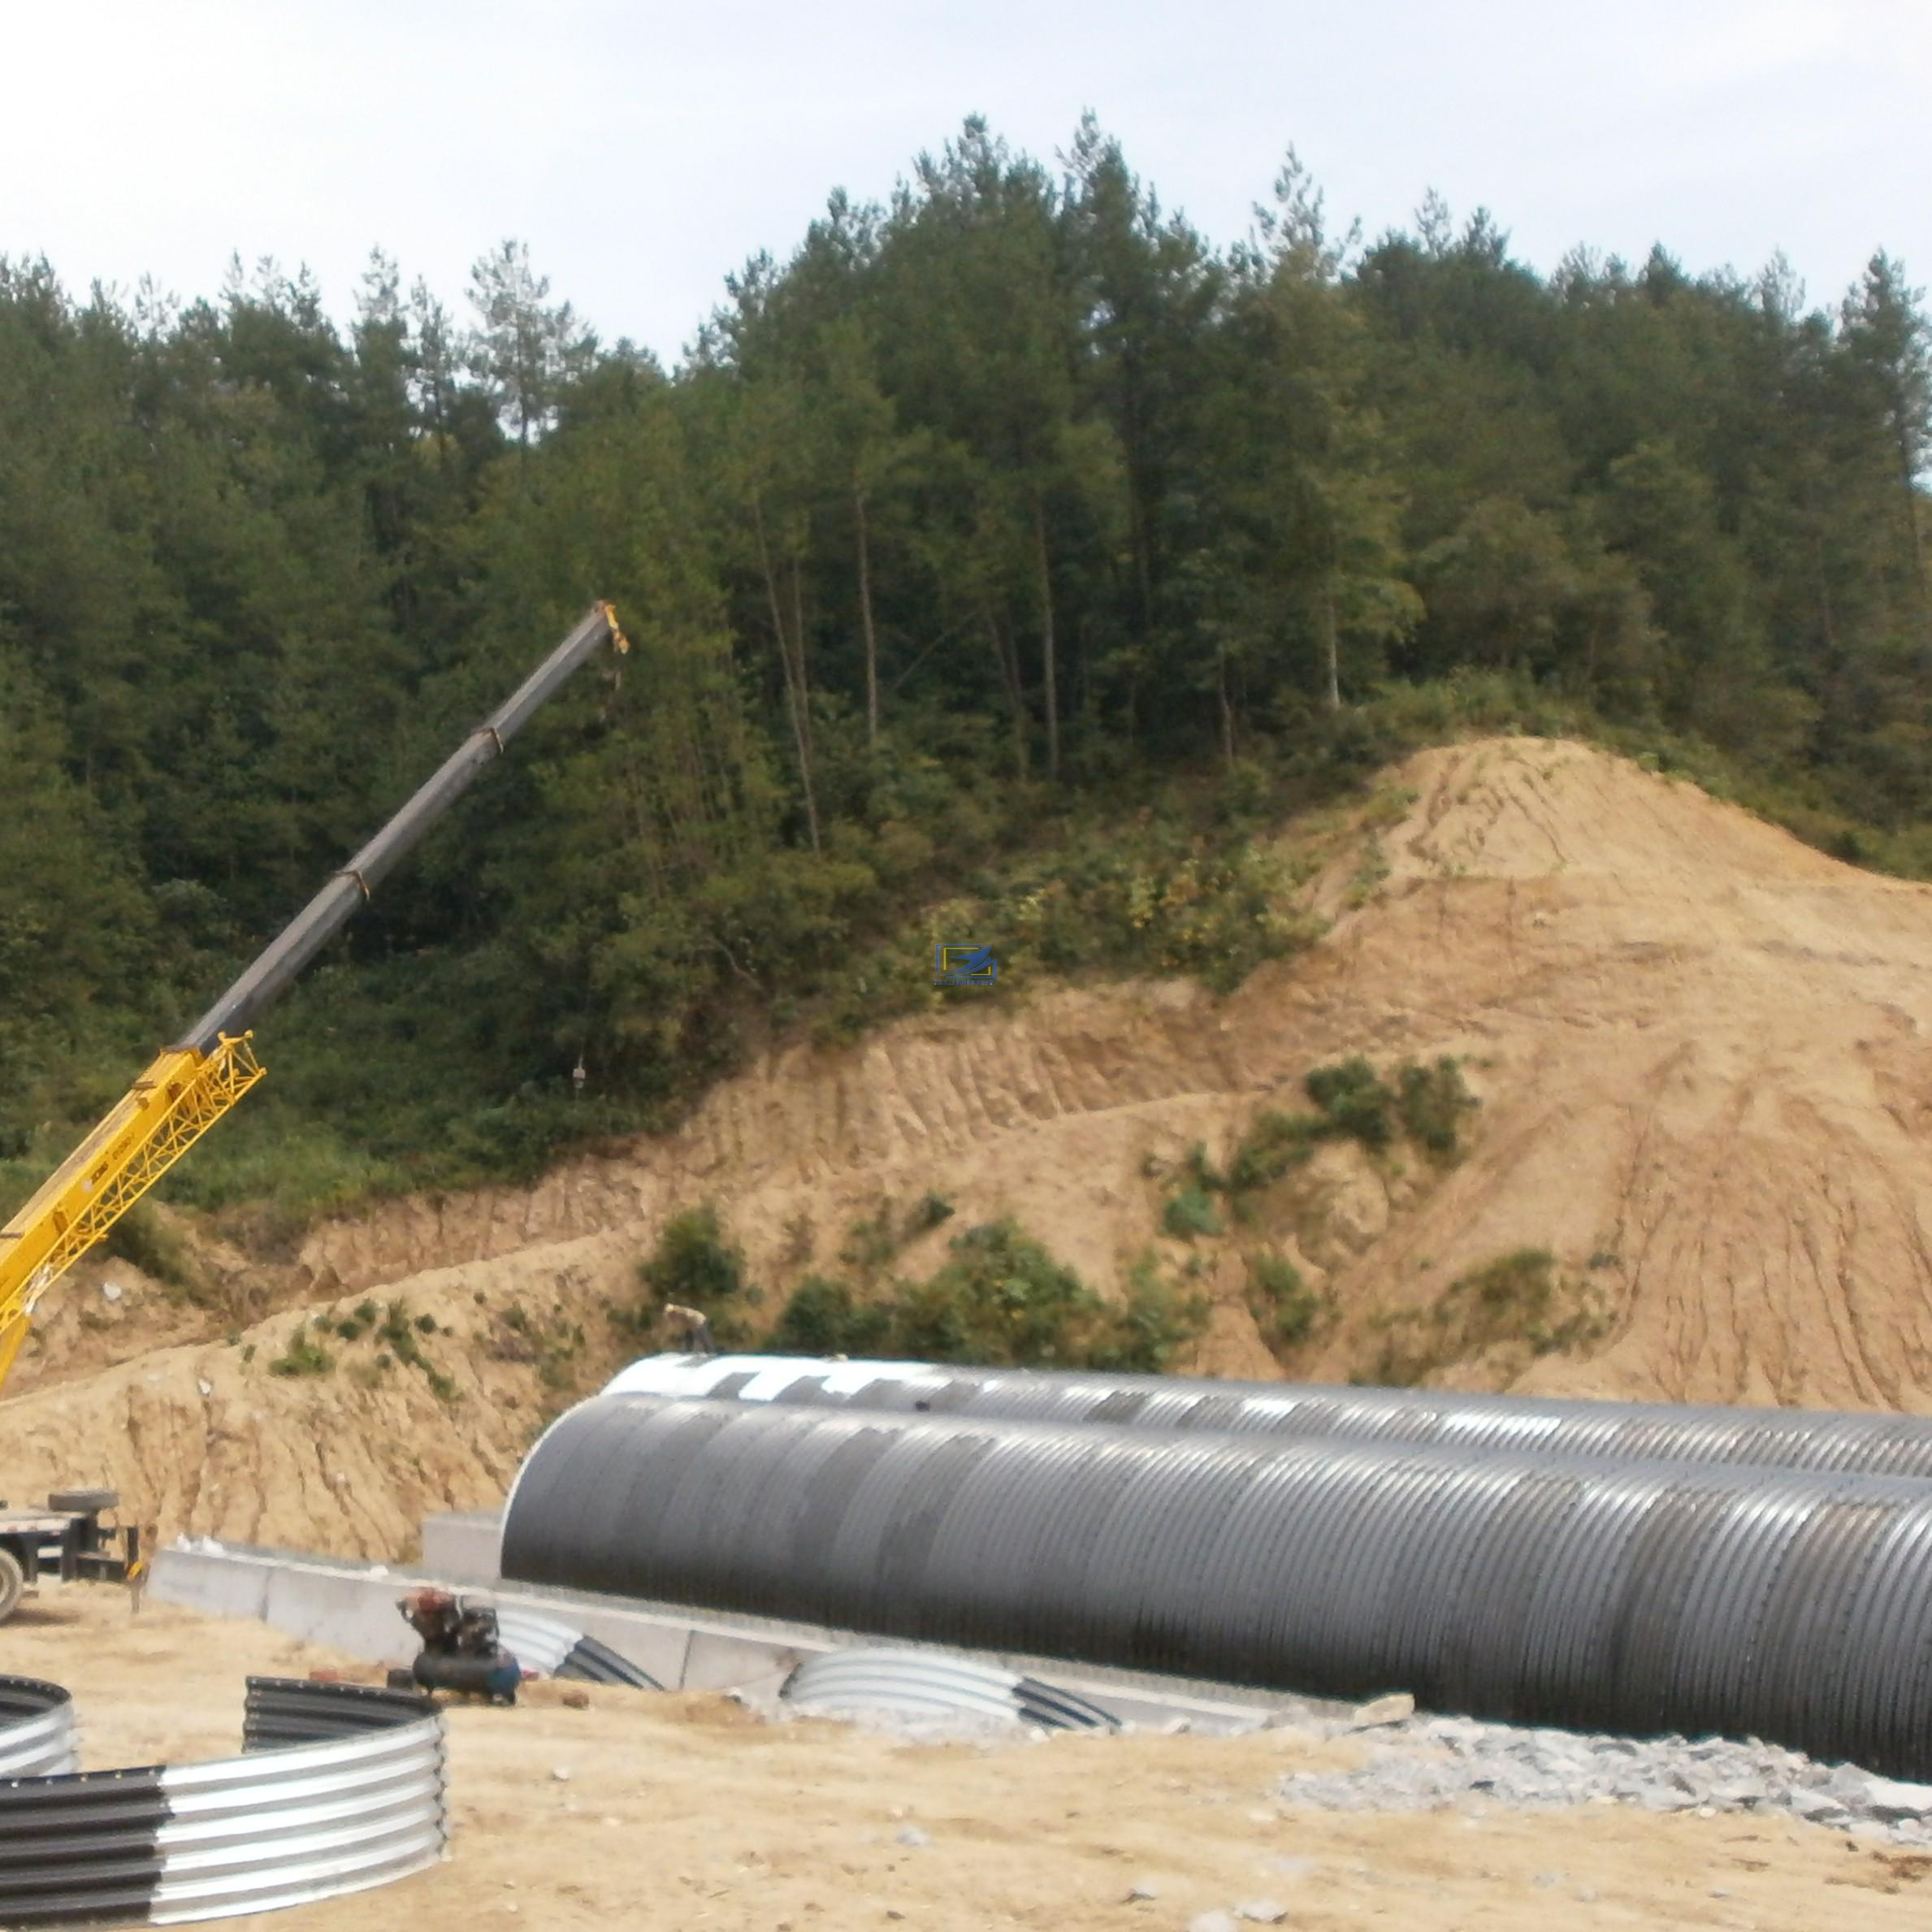 Hot Galvanzied Corrugated Metal Culvert Pipe With Deep